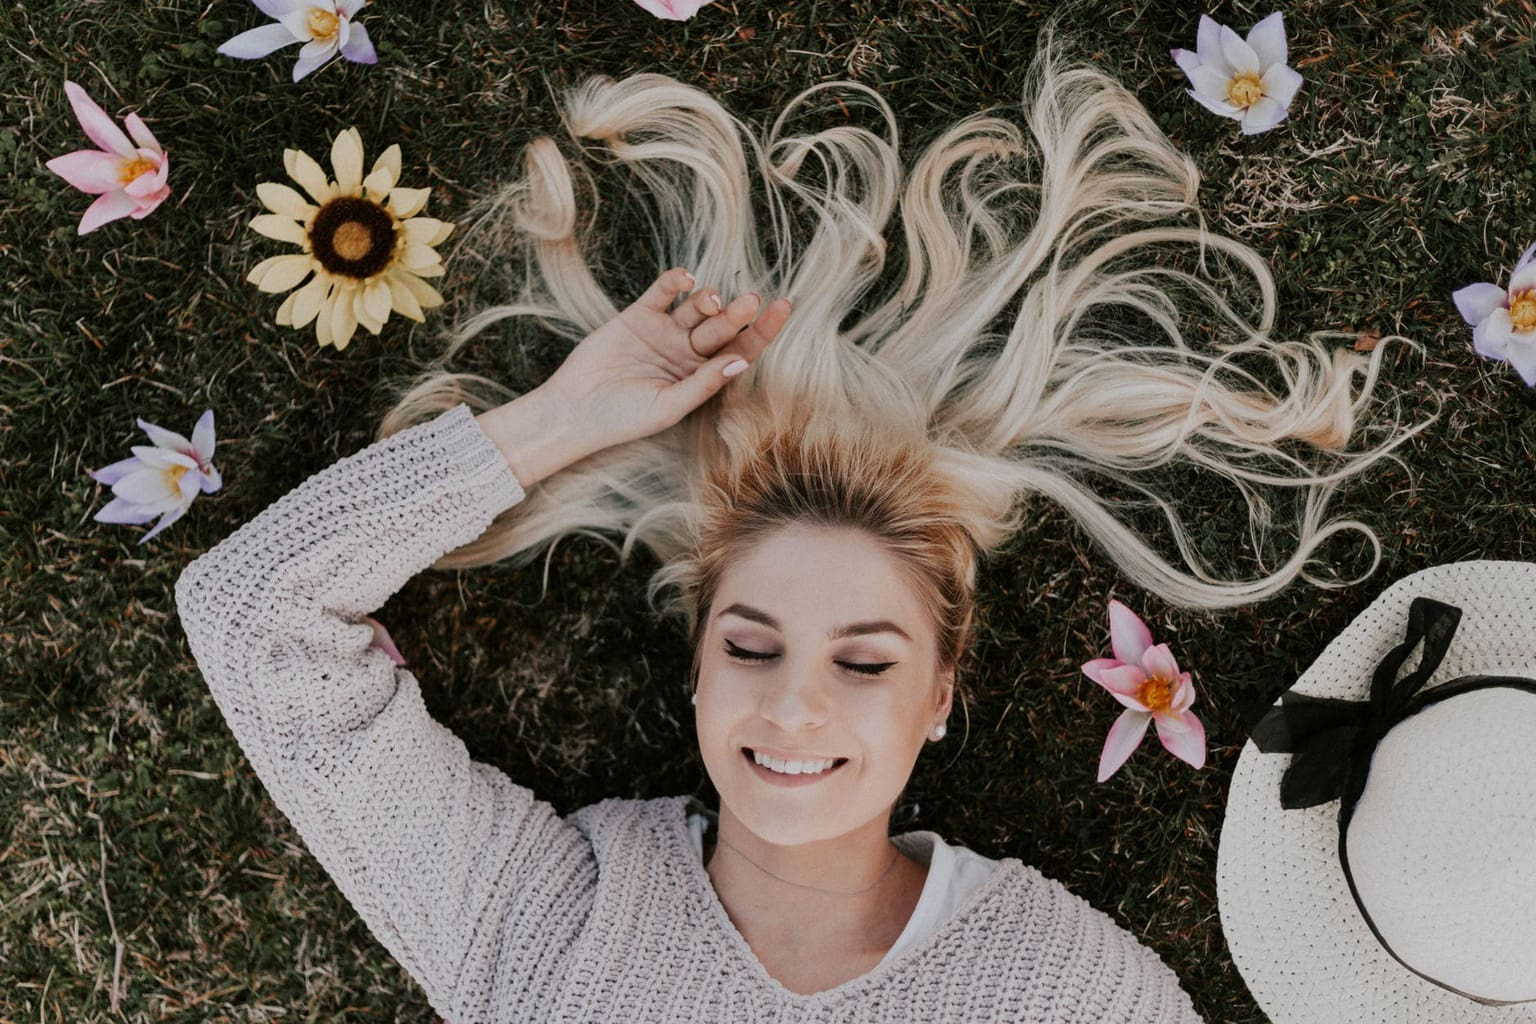 Blonde girl sitting in grass with hair laid out, flowers, and a hat